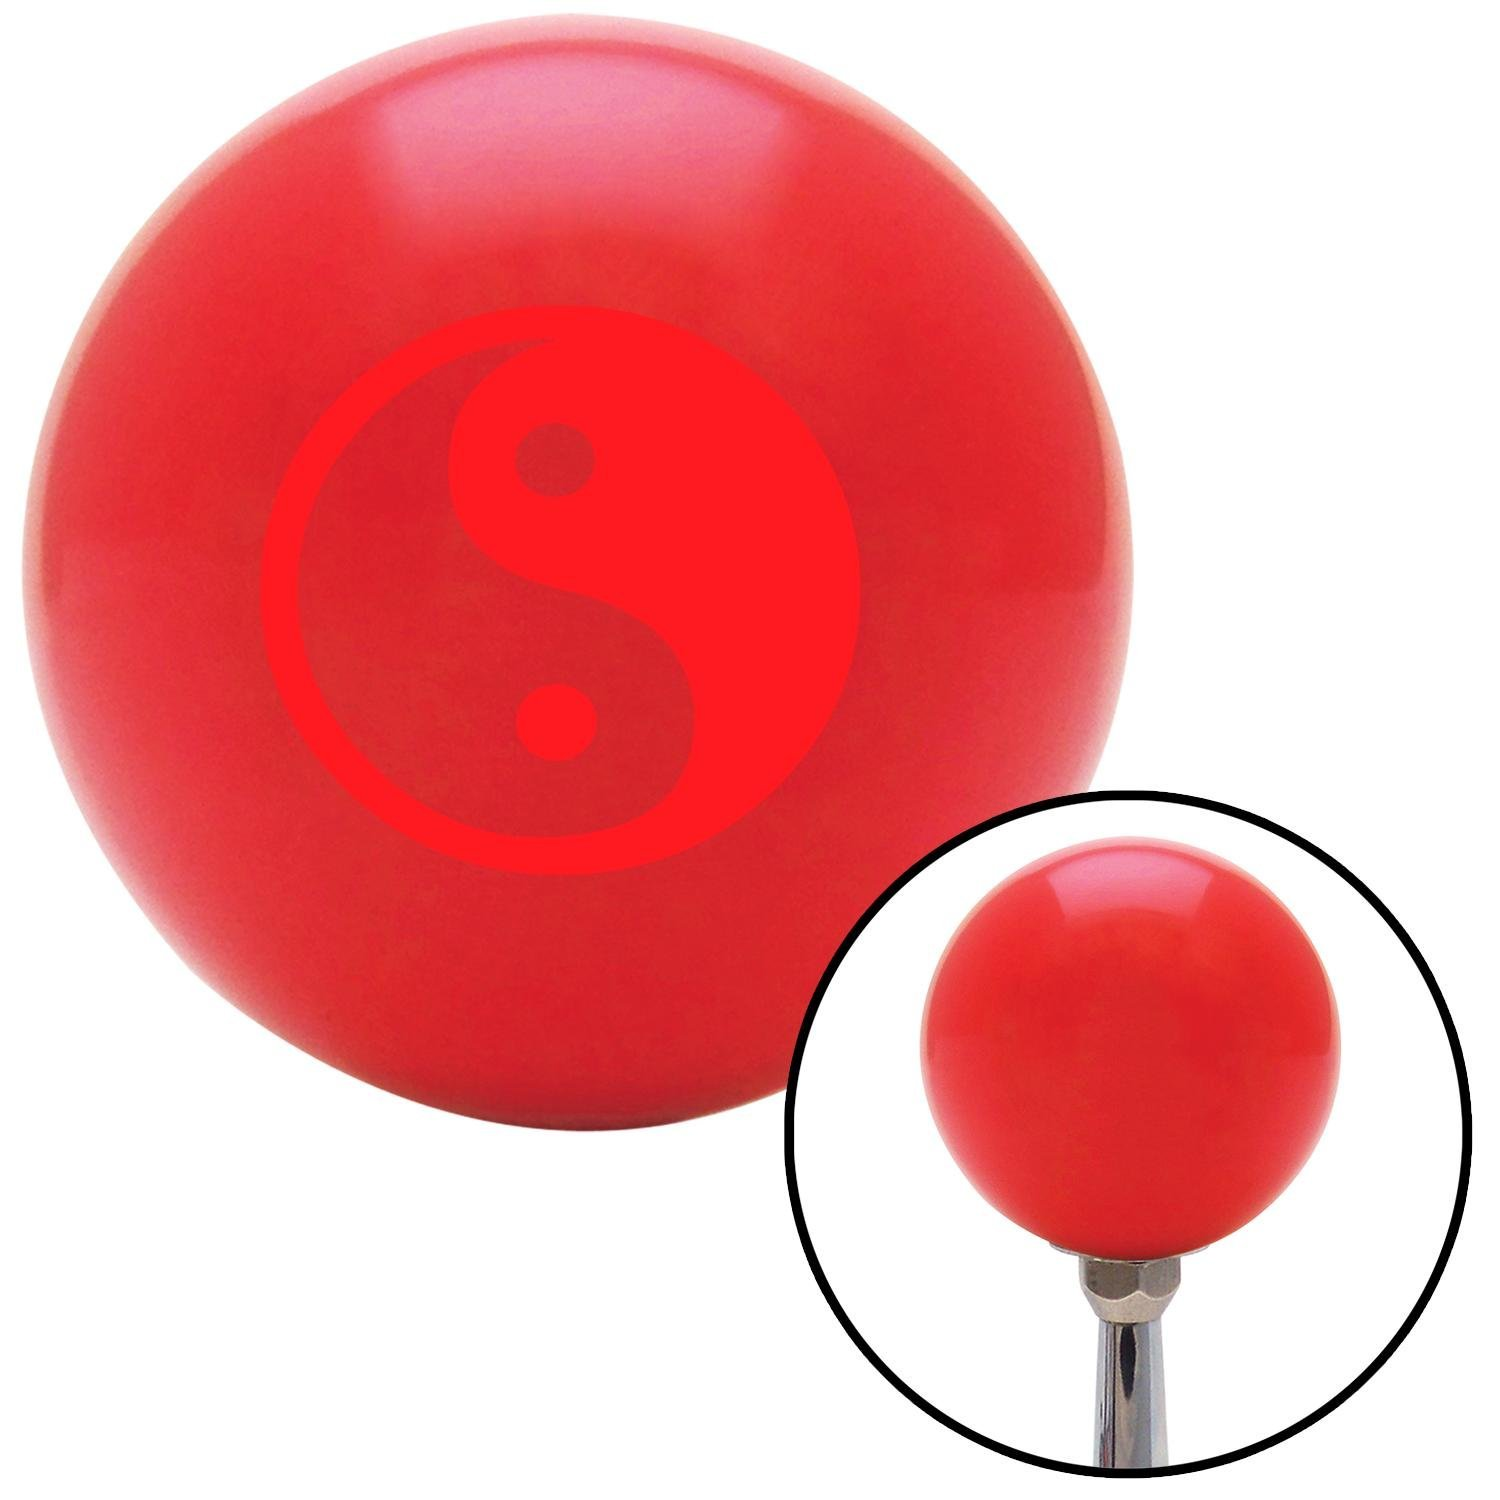 Red Yin /& Yang American Shifter 102019 Red Shift Knob with M16 x 1.5 Insert